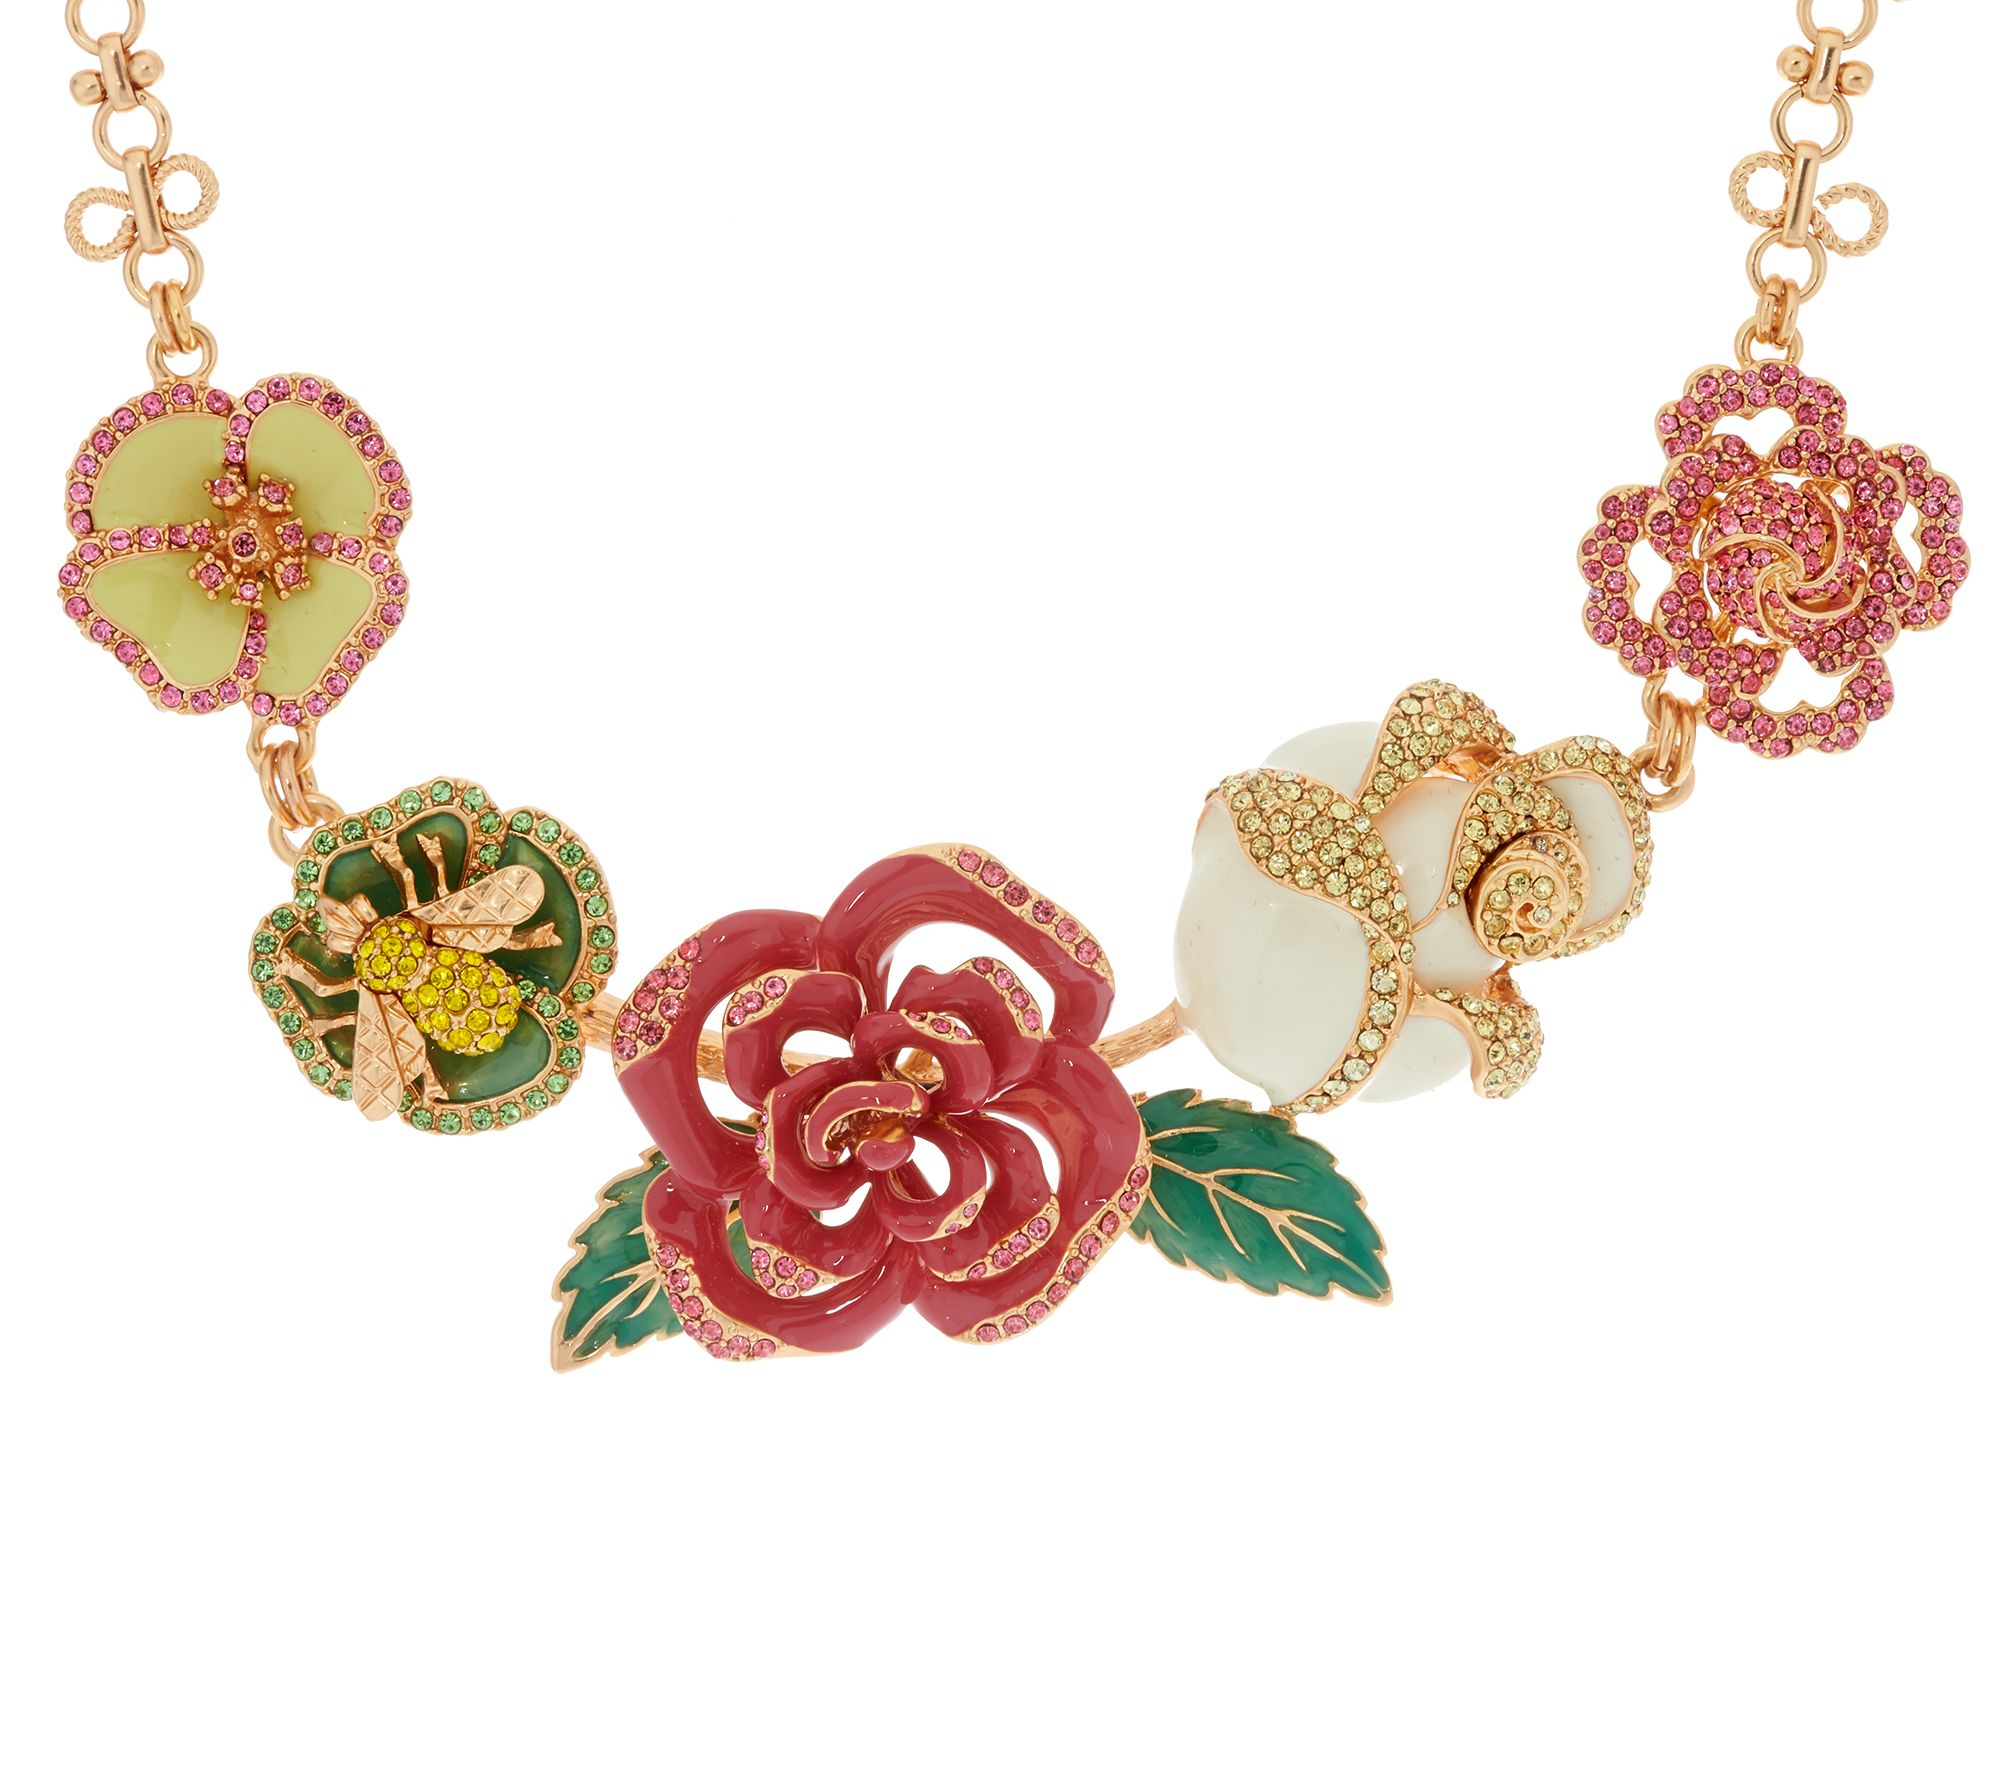 Joan rivers enamel rose garden statement necklace page 1 for Joan rivers jewelry necklaces